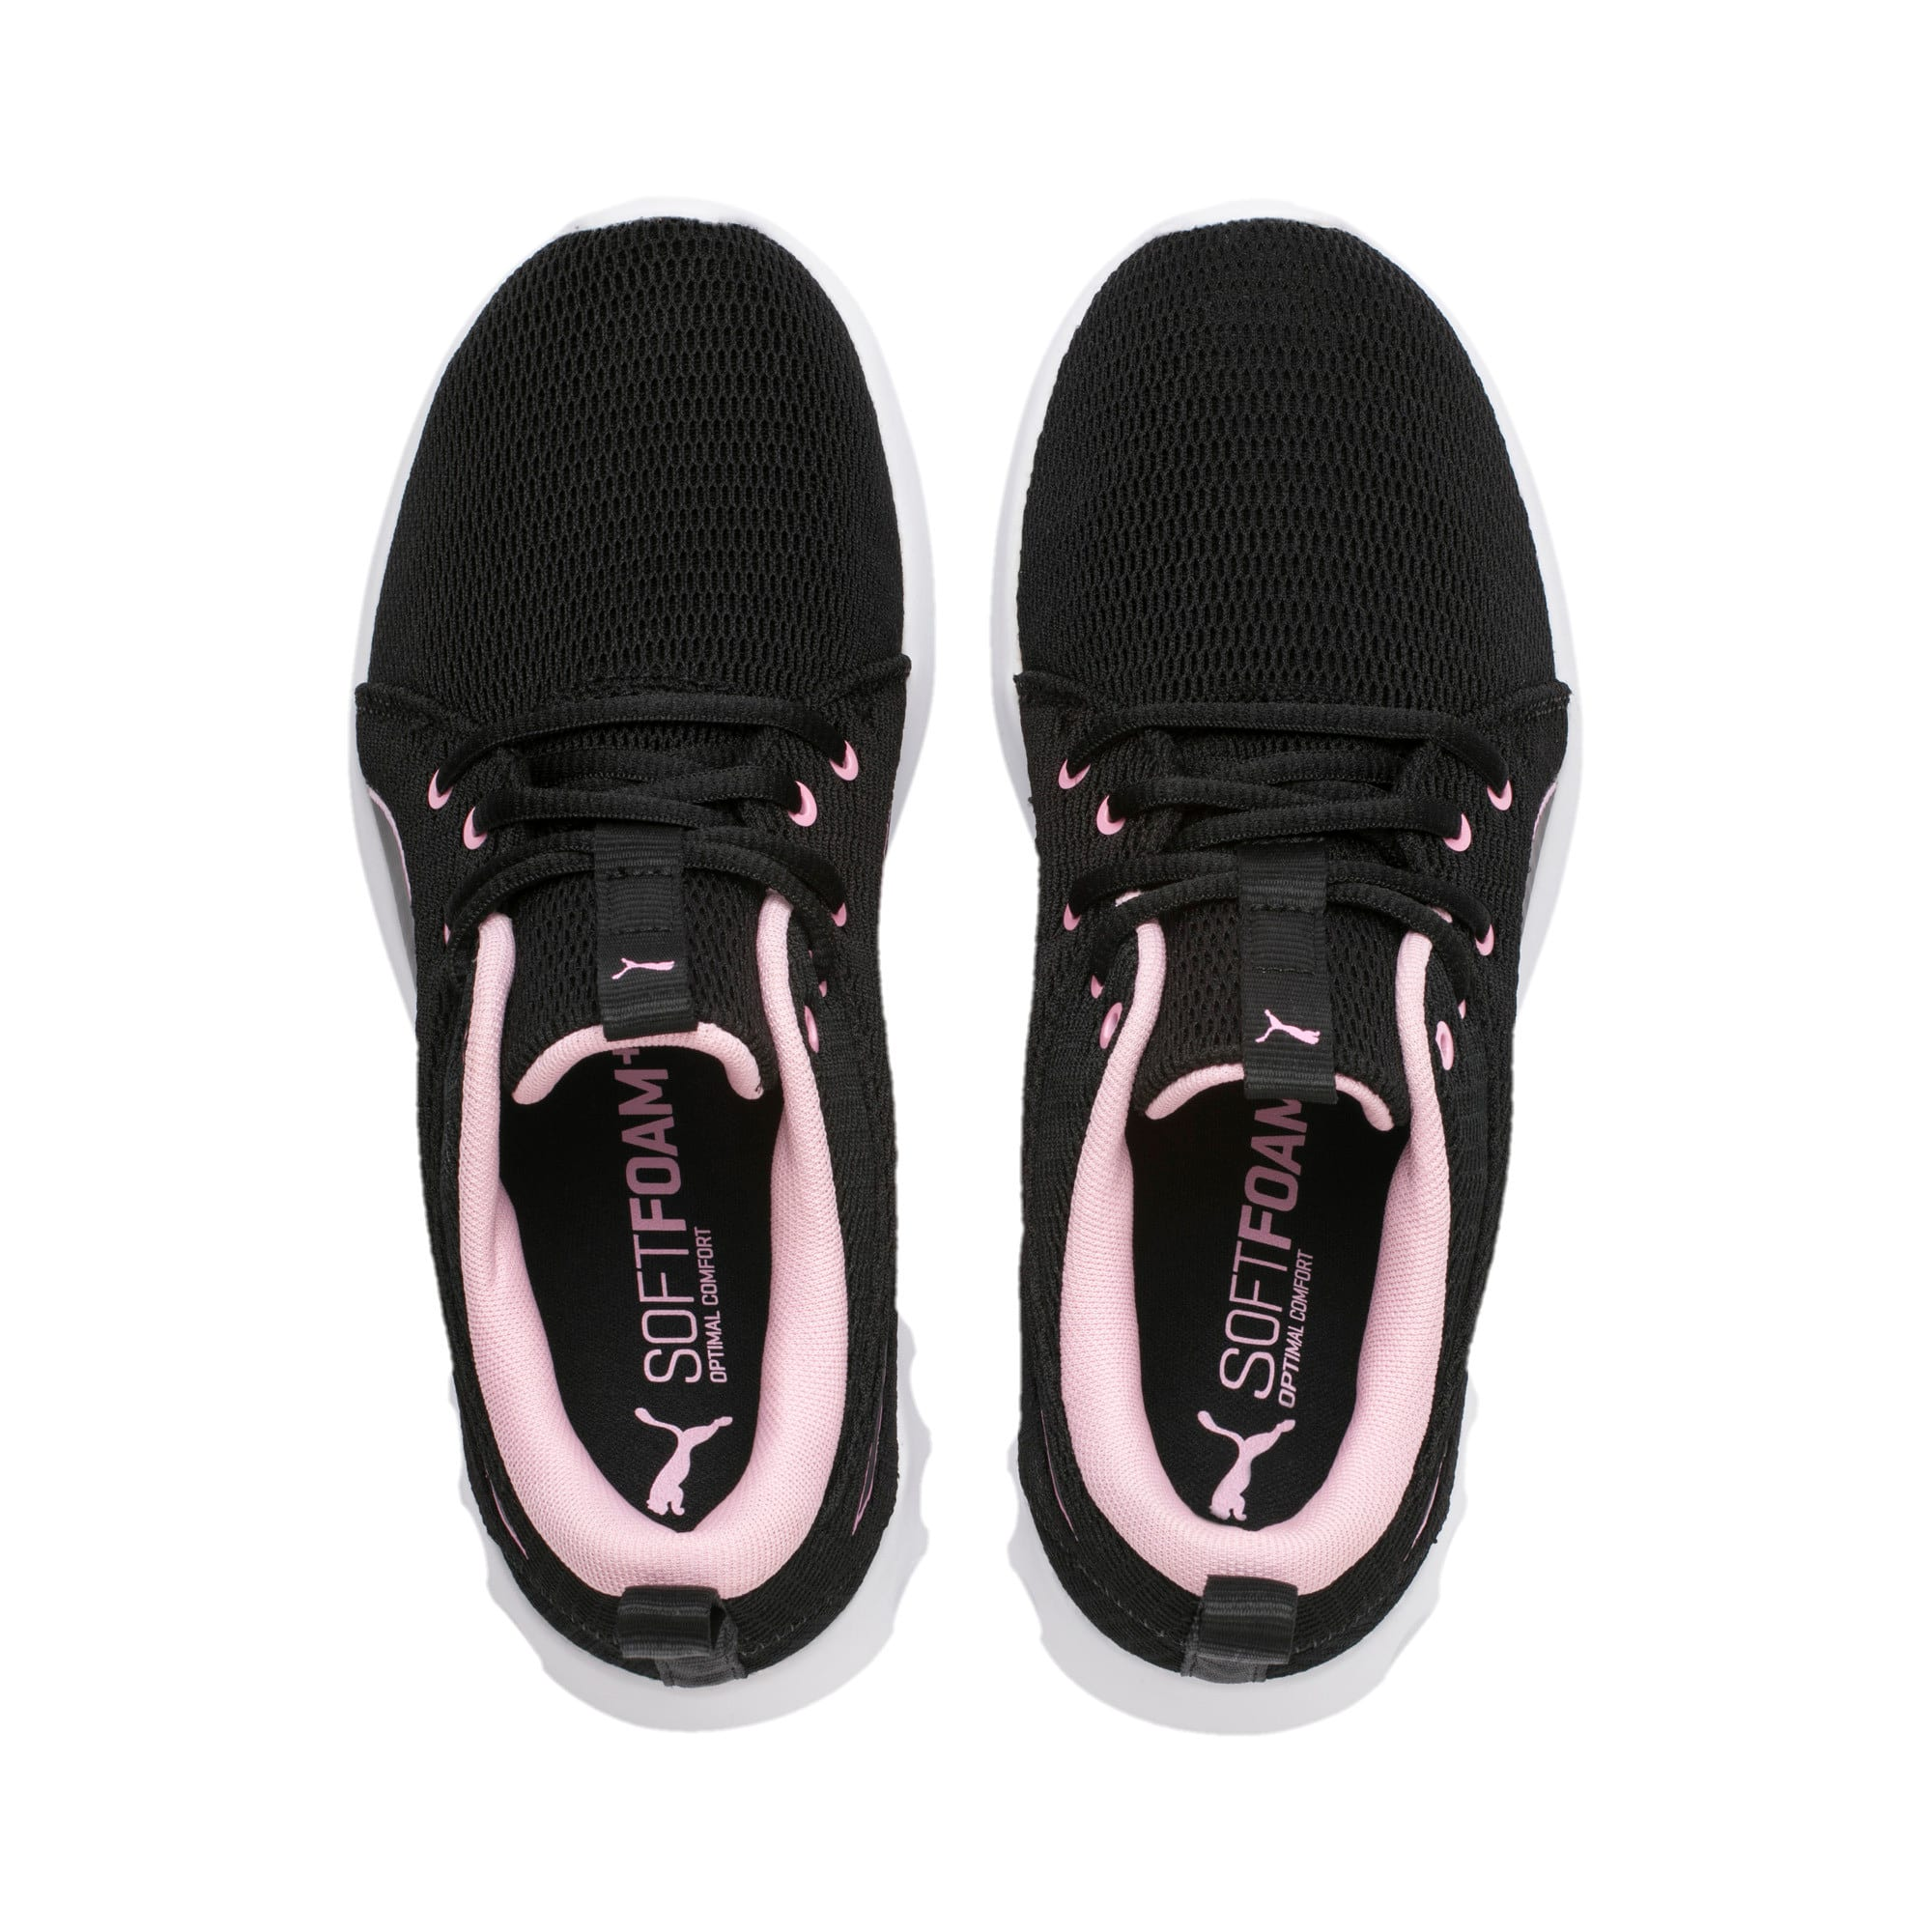 Thumbnail 6 of Carson 2 New Core Women's Training Shoes, Puma Black-Pale Pink, medium